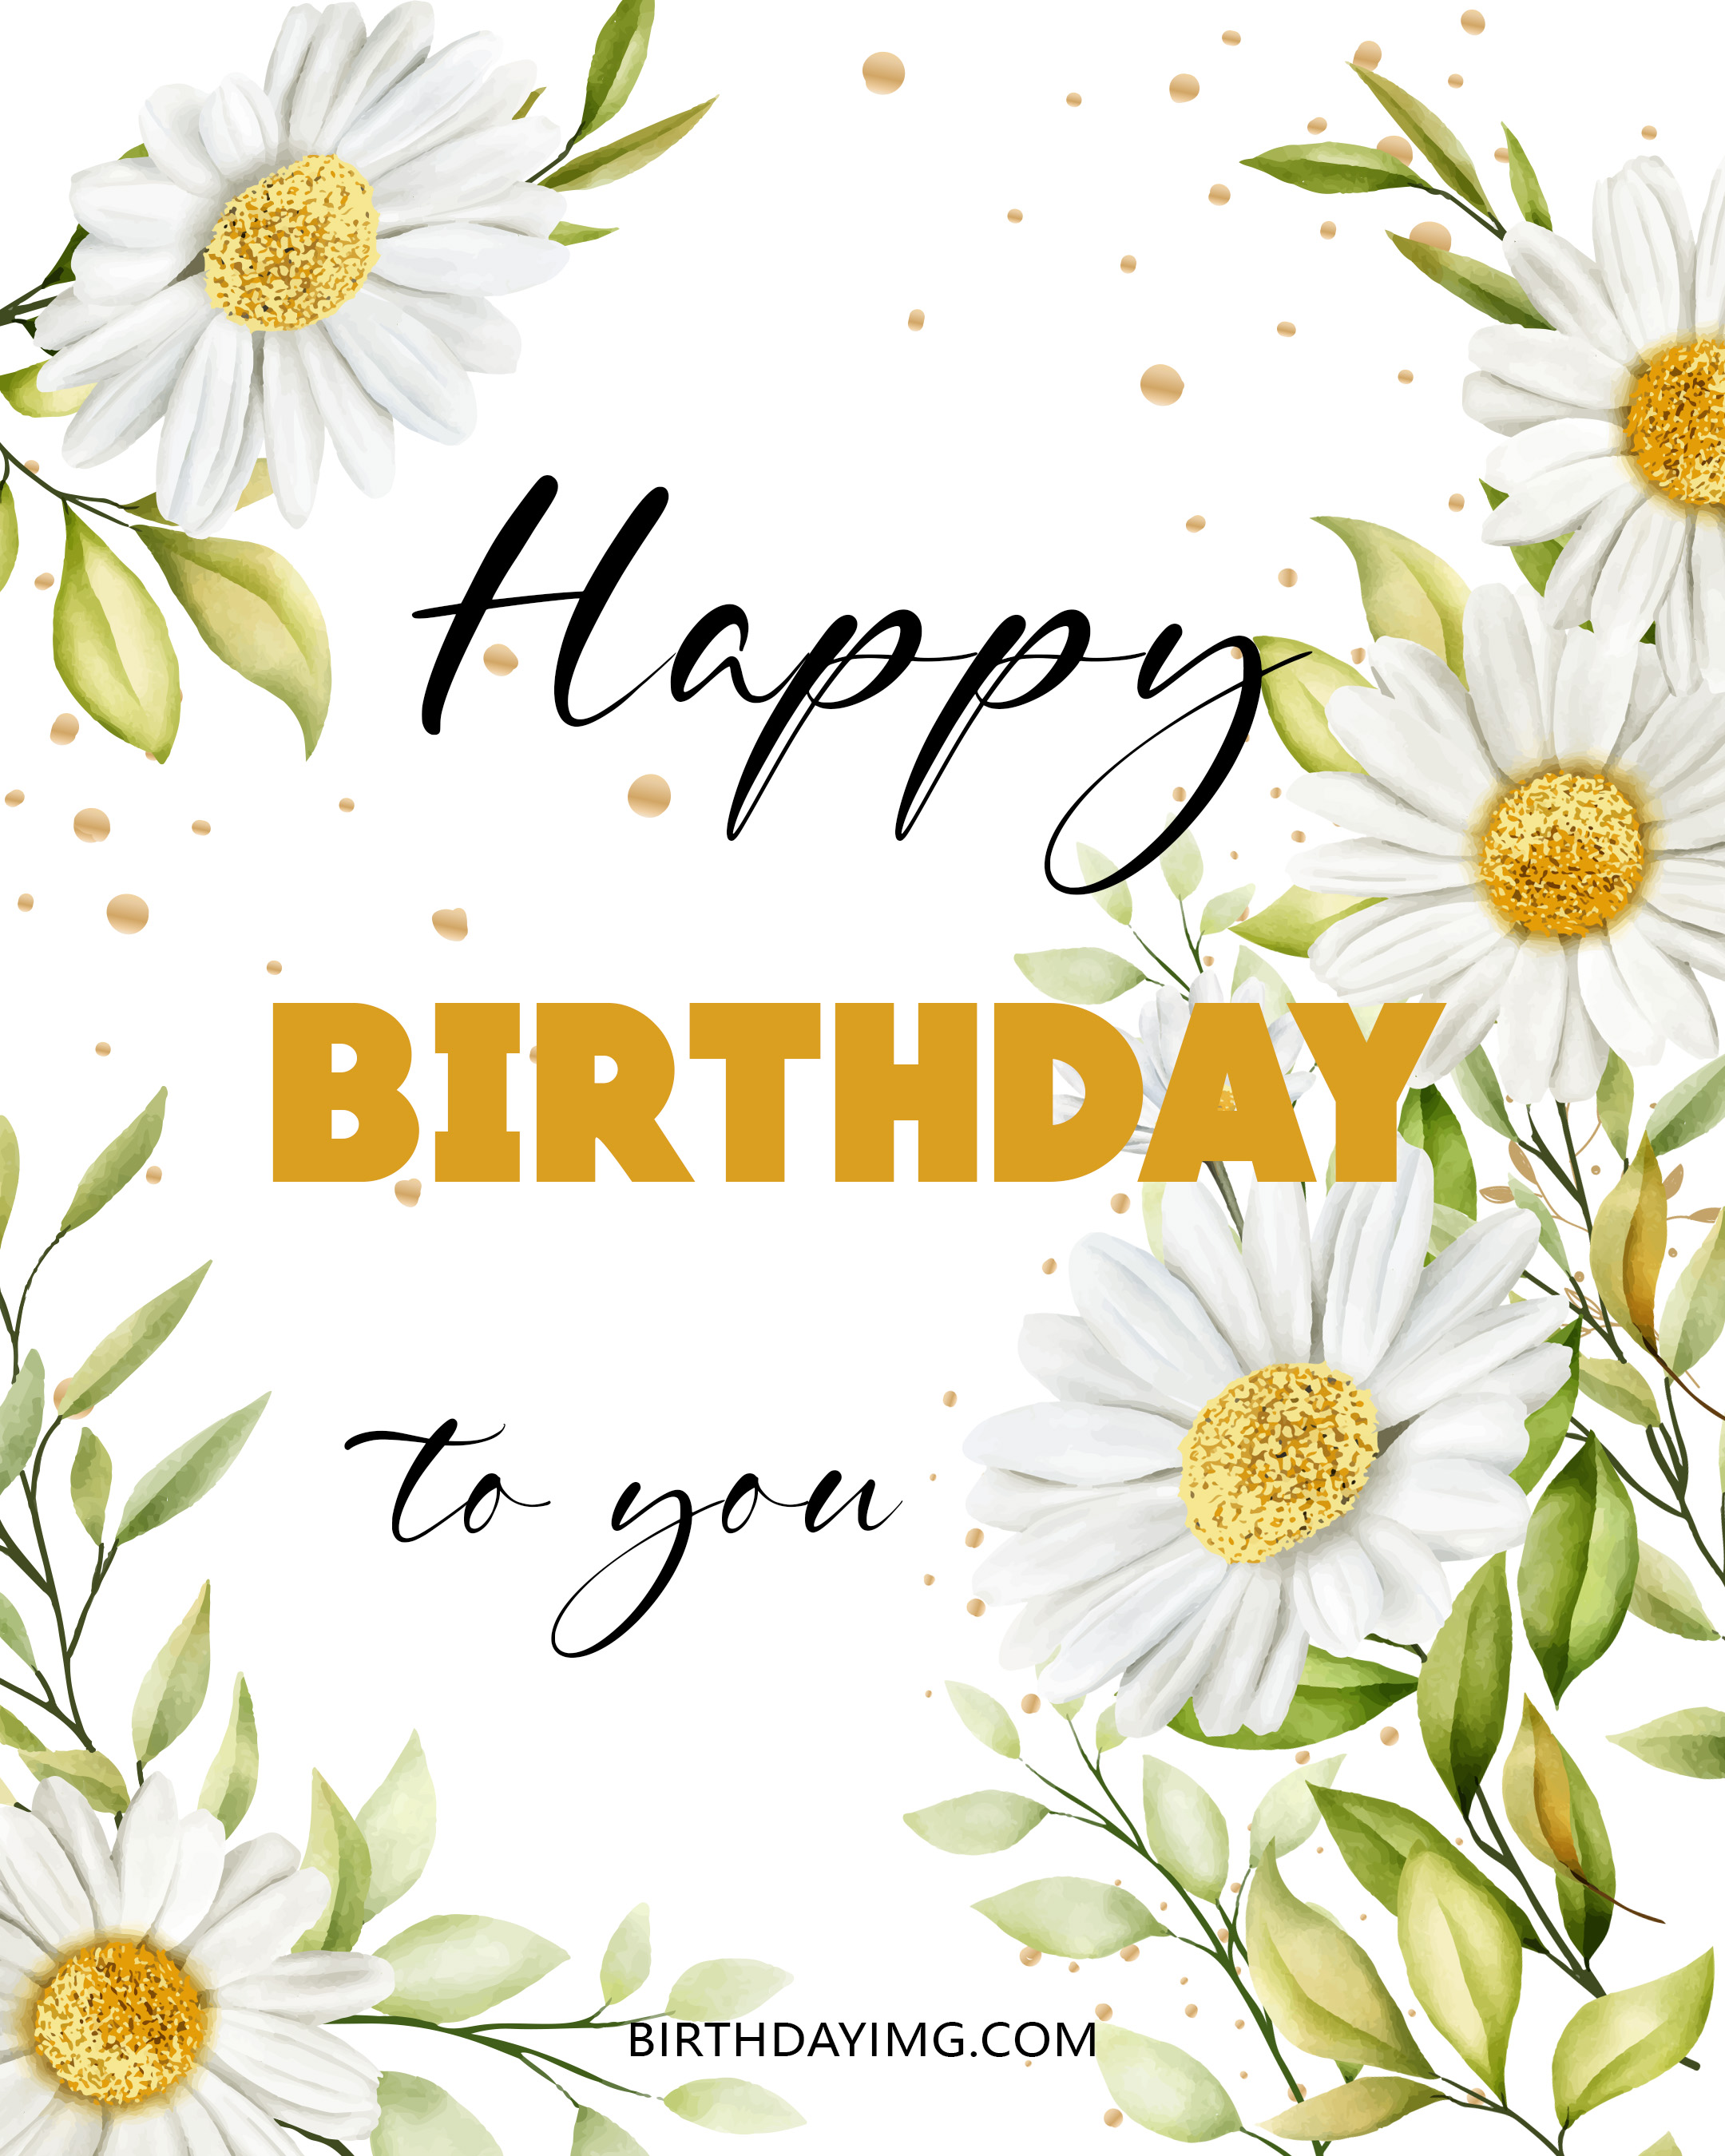 Free Happy Birthday Image For Her (Woman) With Chamomile - birthdayimg.com